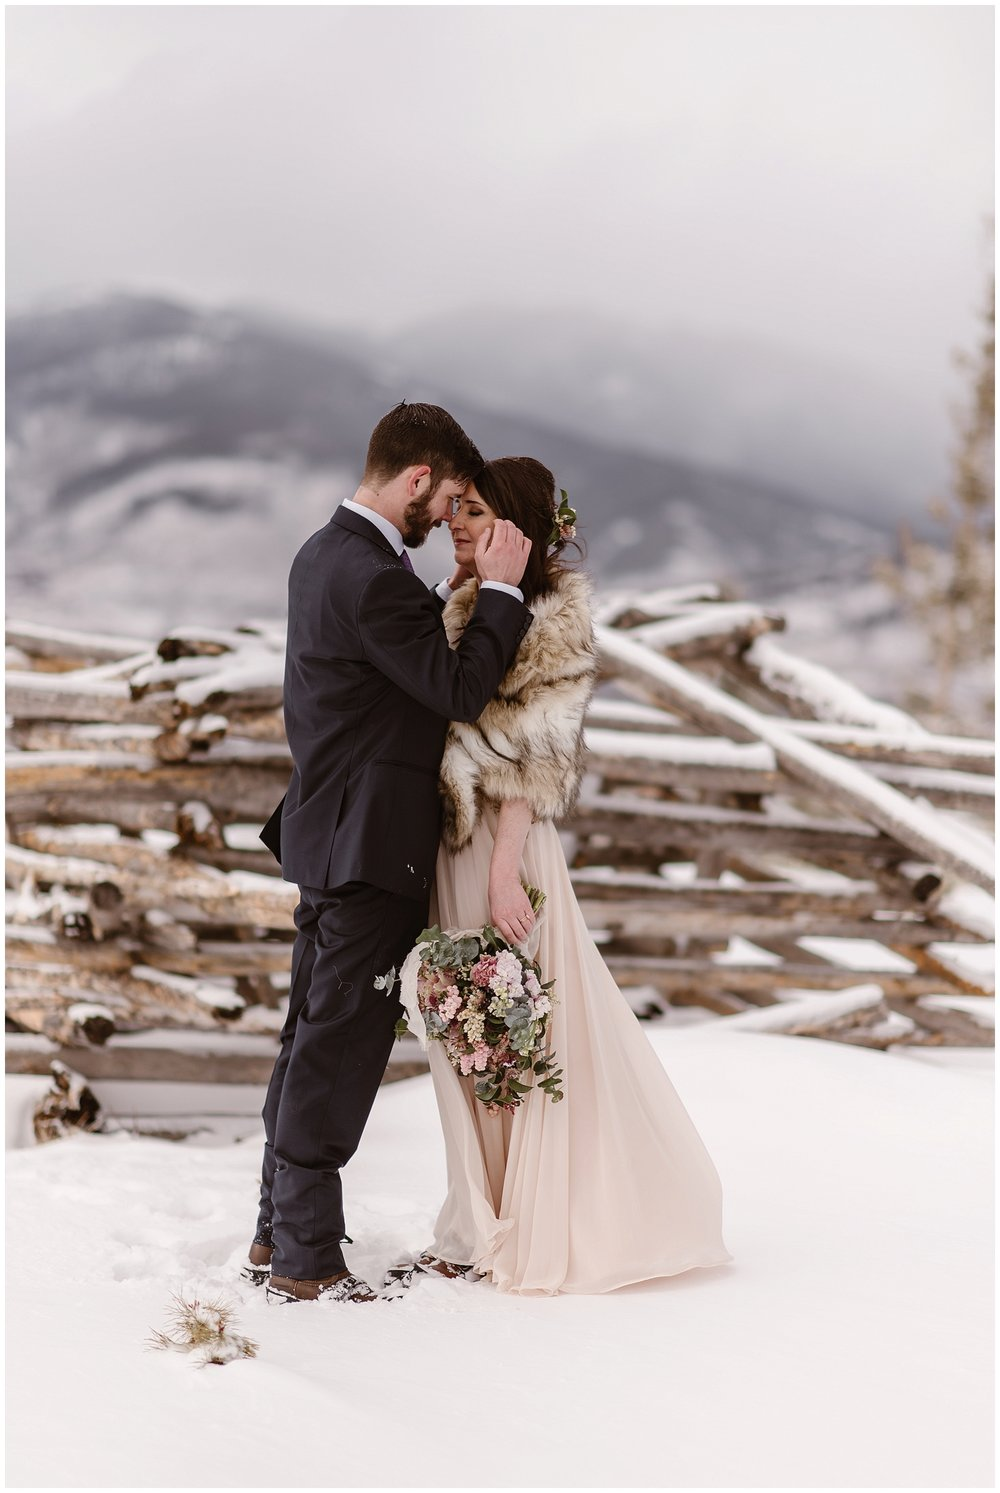 Marlayna's blush wedding dress was stunning in the snowy mountain setting of their elopement day. Photo by Adventure Instead, Maddie Mae Elopement Photographers.